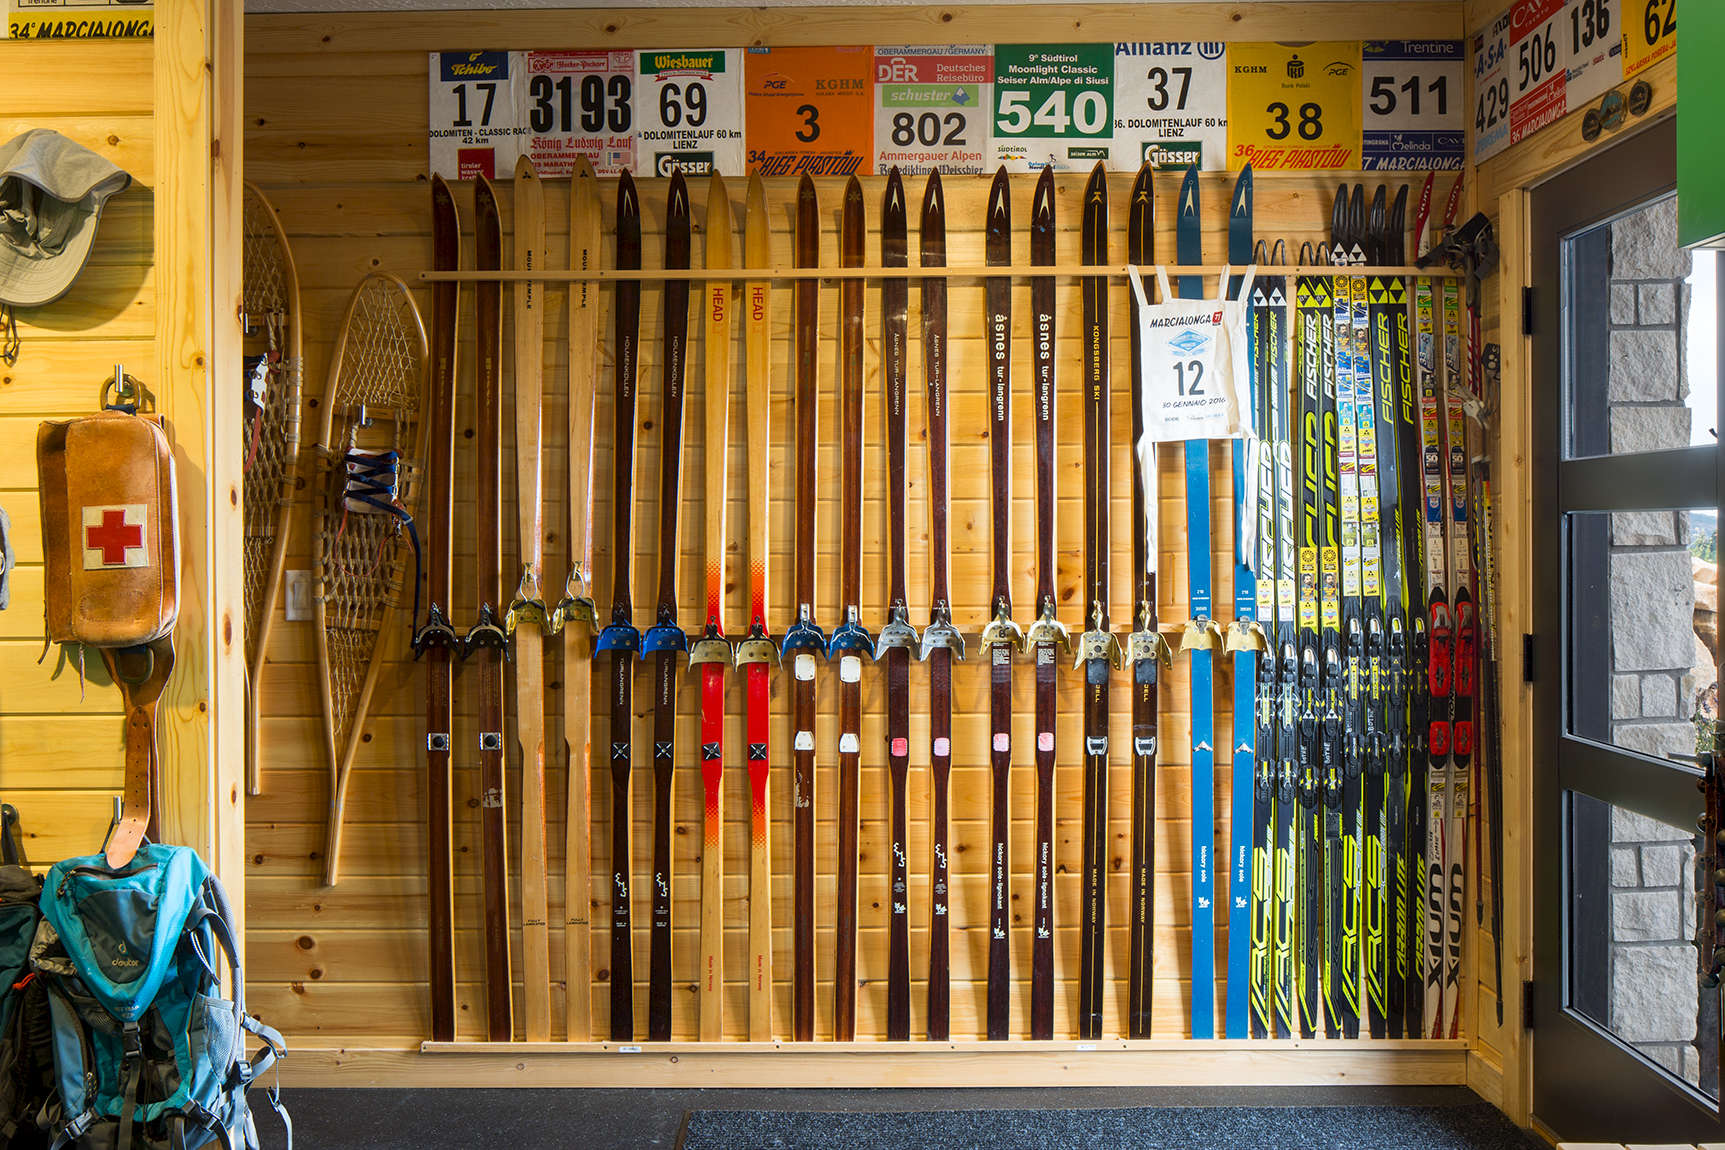 This is an interiord detail photo of a man cave high in the mountains above Park City.The owner of the home is a Nordic Skiing enthusiast and the photograph is of a rack of Nordic skis against an exposed wood in wall illuminated by daylight coming in from the front door.